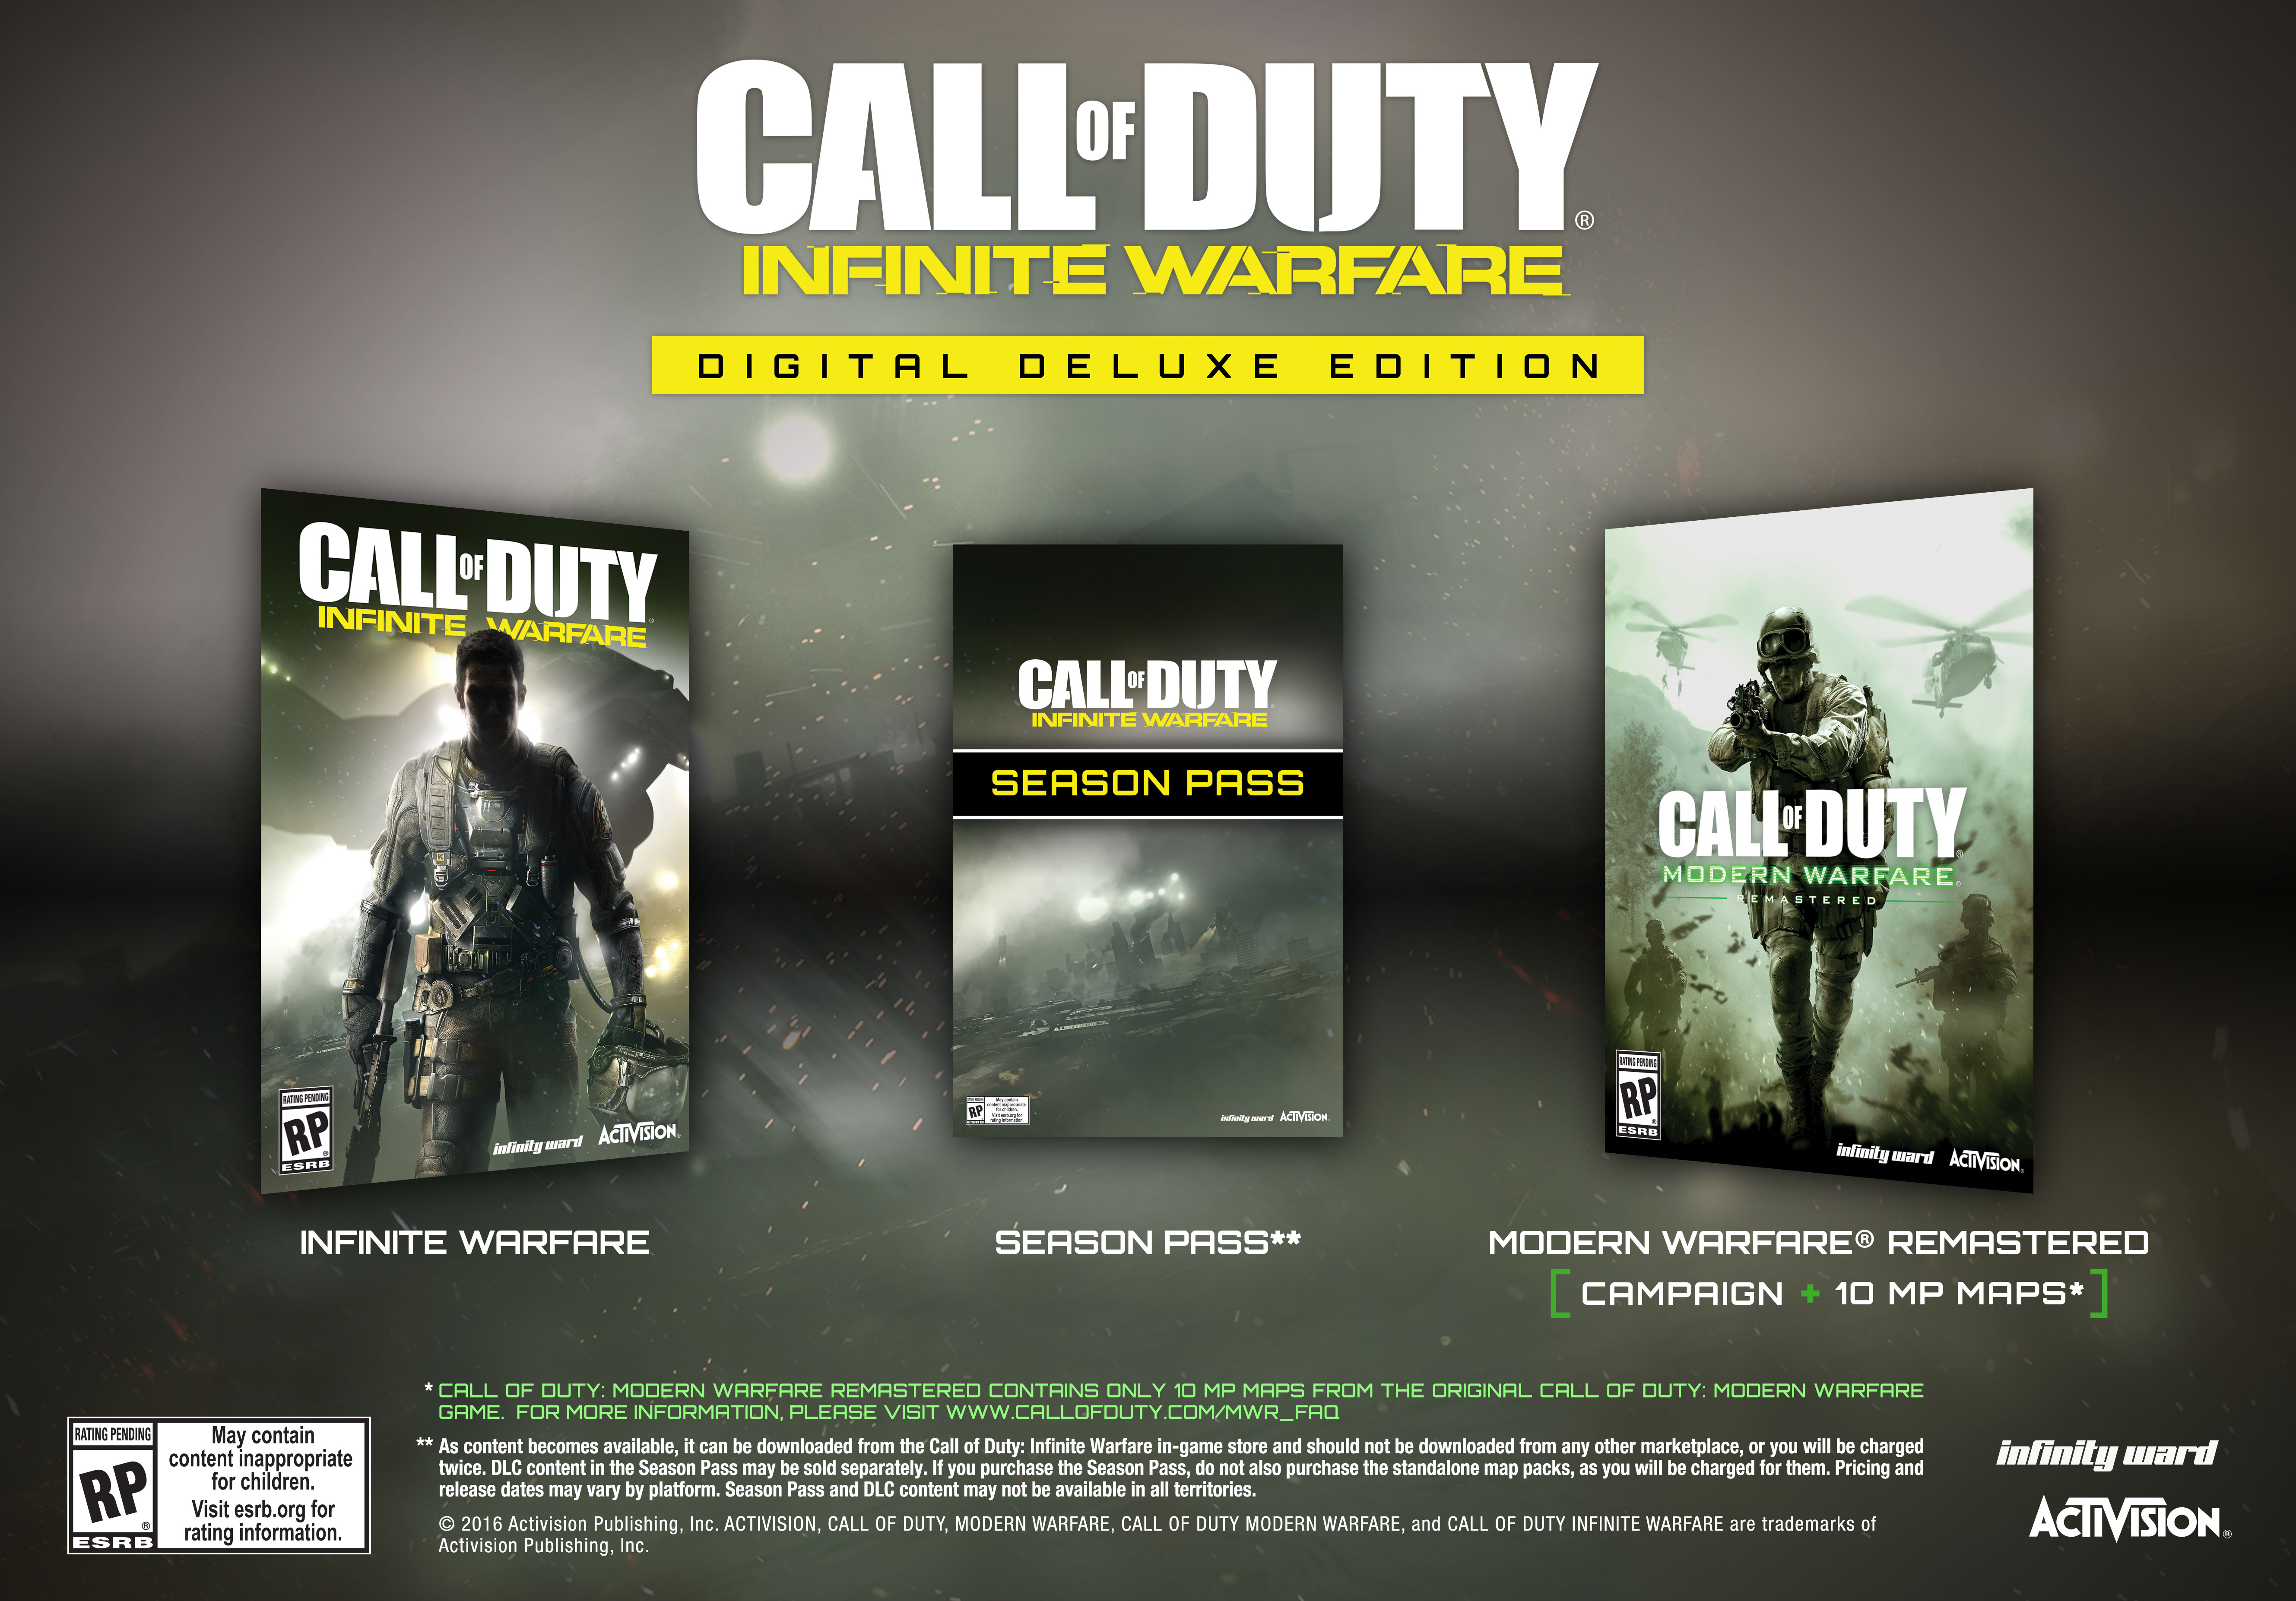 Call of duty release dates